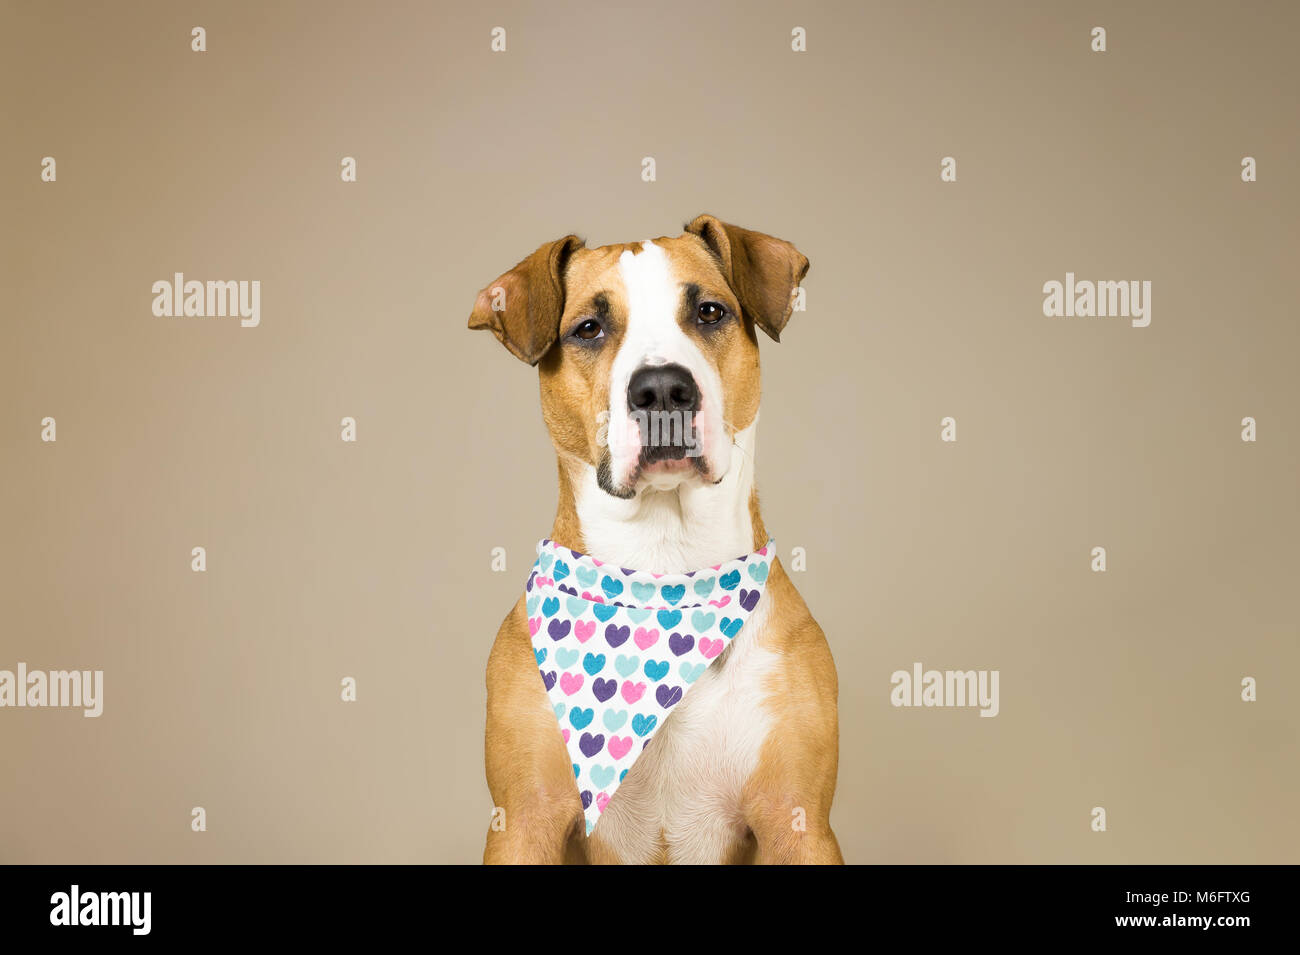 Cute staffordshire terrier dog in bandana with hearts. Young pitbull puppy sits in neutral backgraund posing for - Stock Image